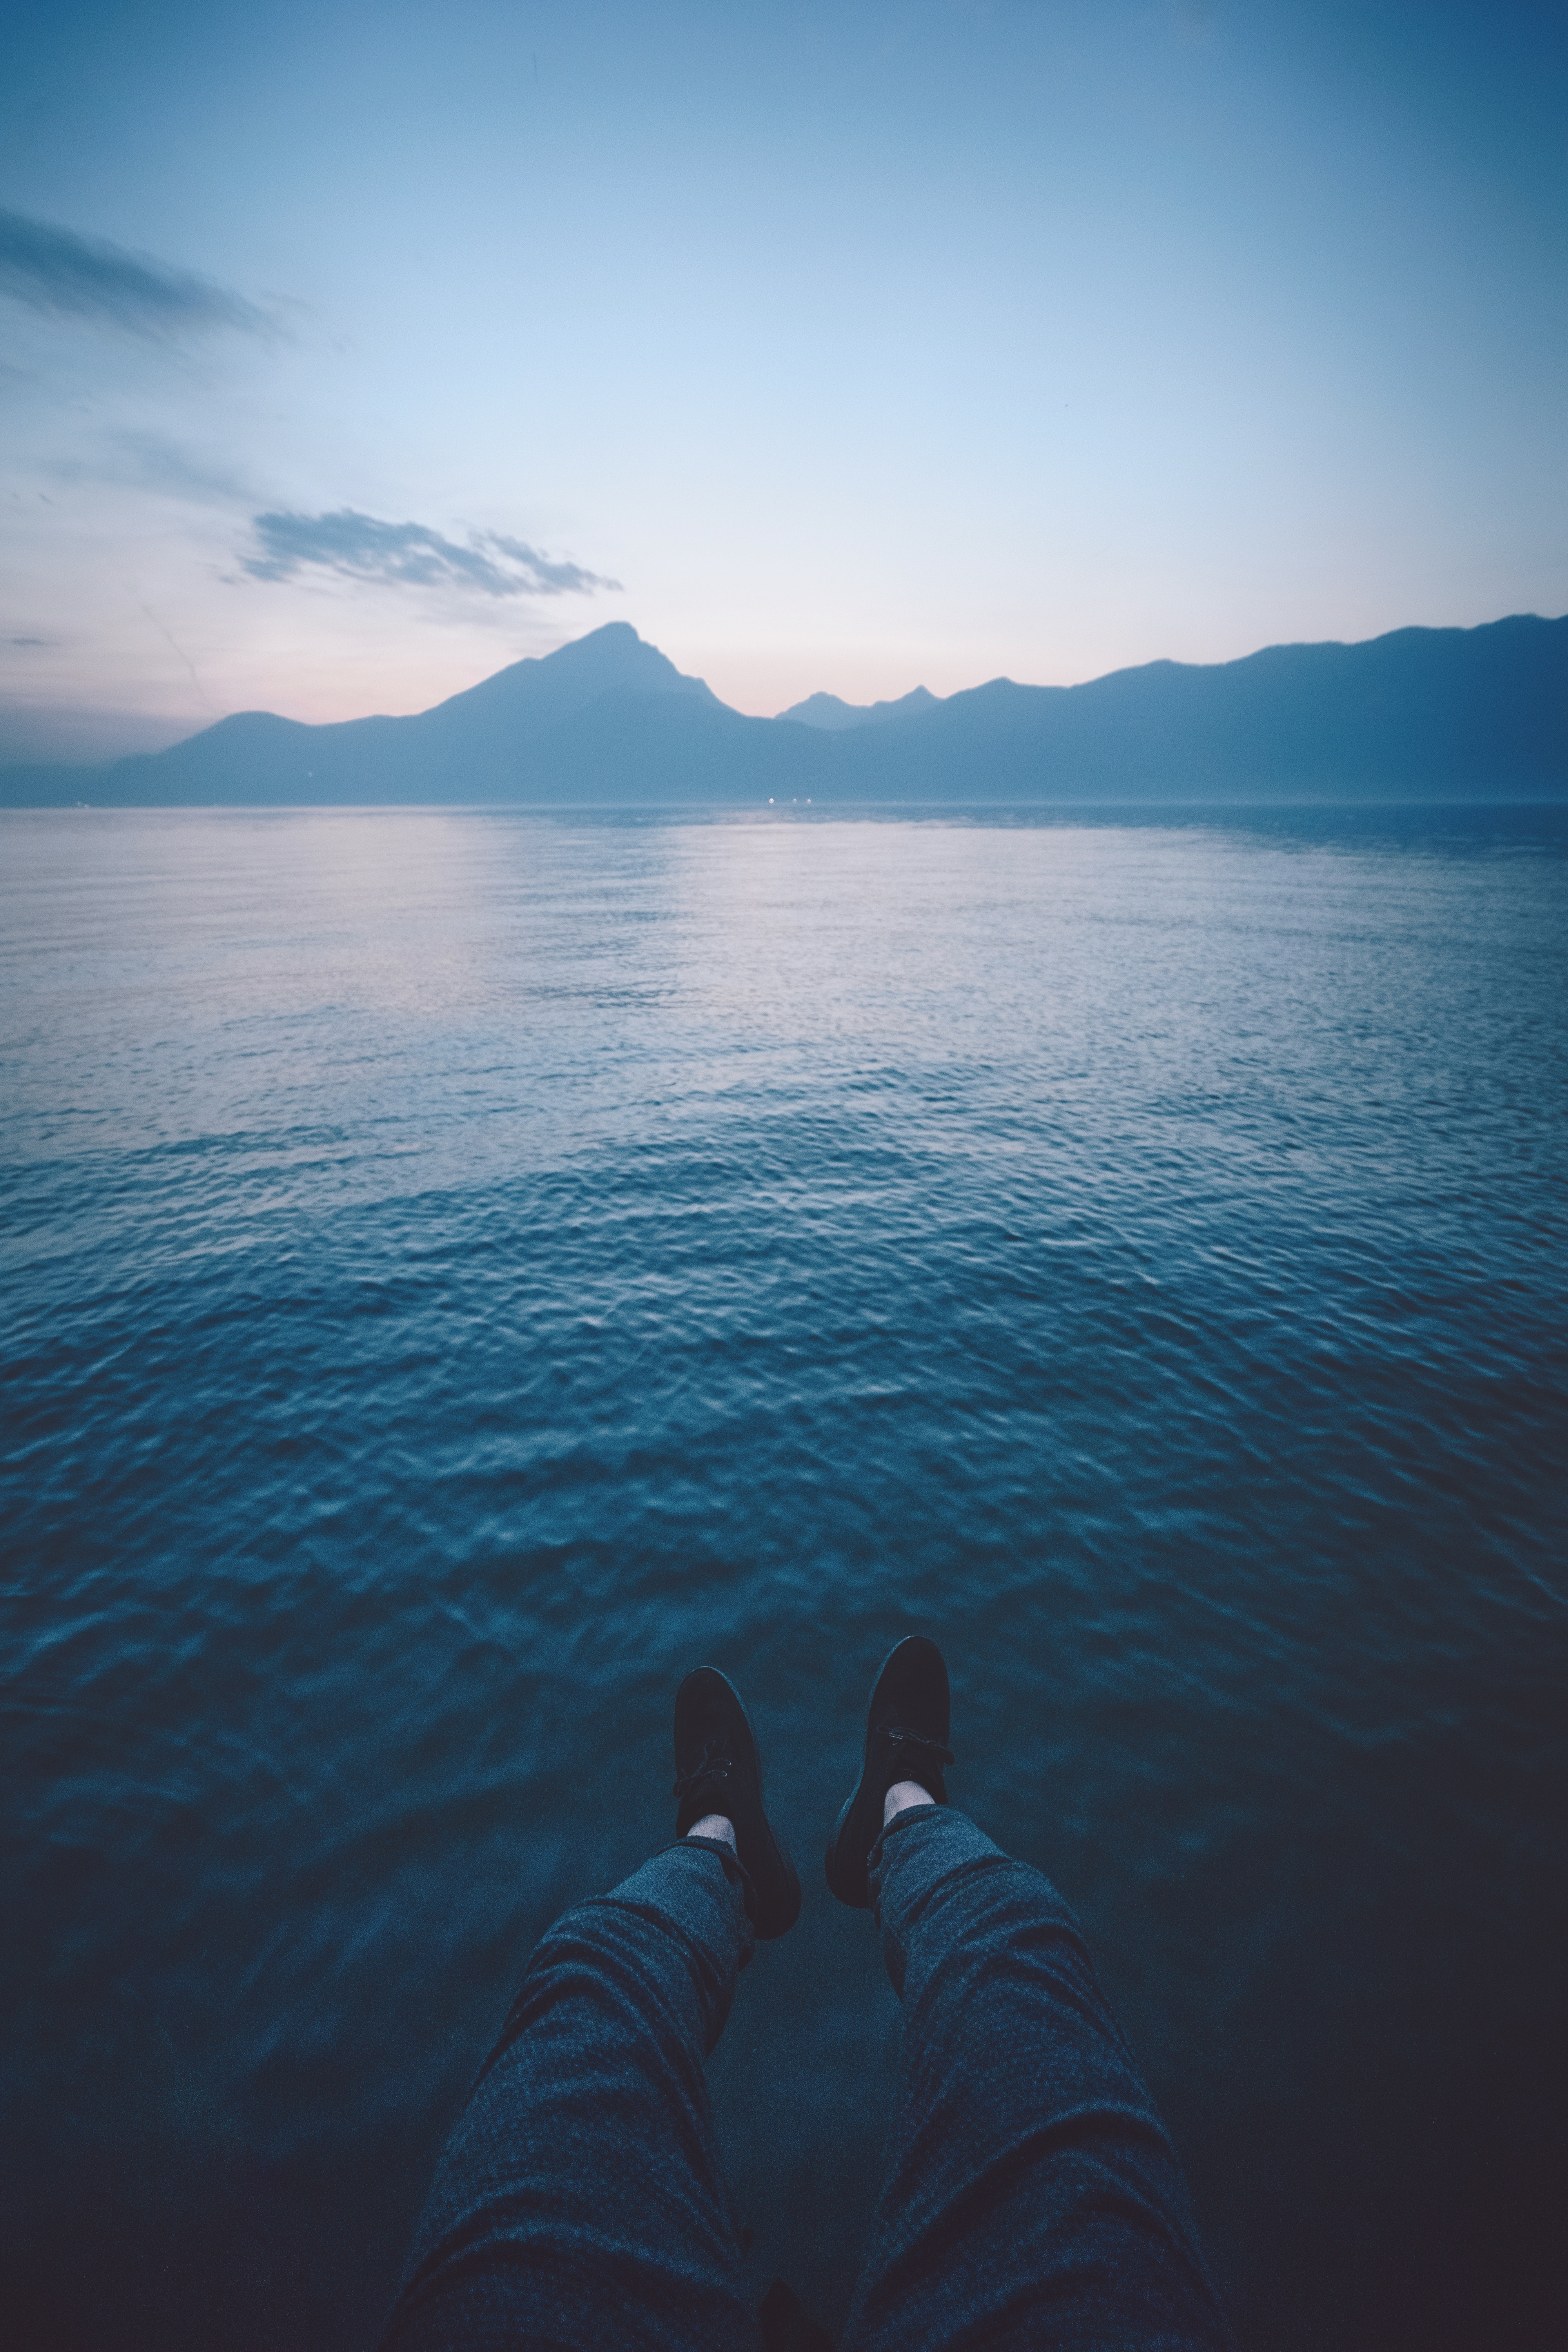 A person's feet hanging over water while overlooking the mountains in Pai at sunset